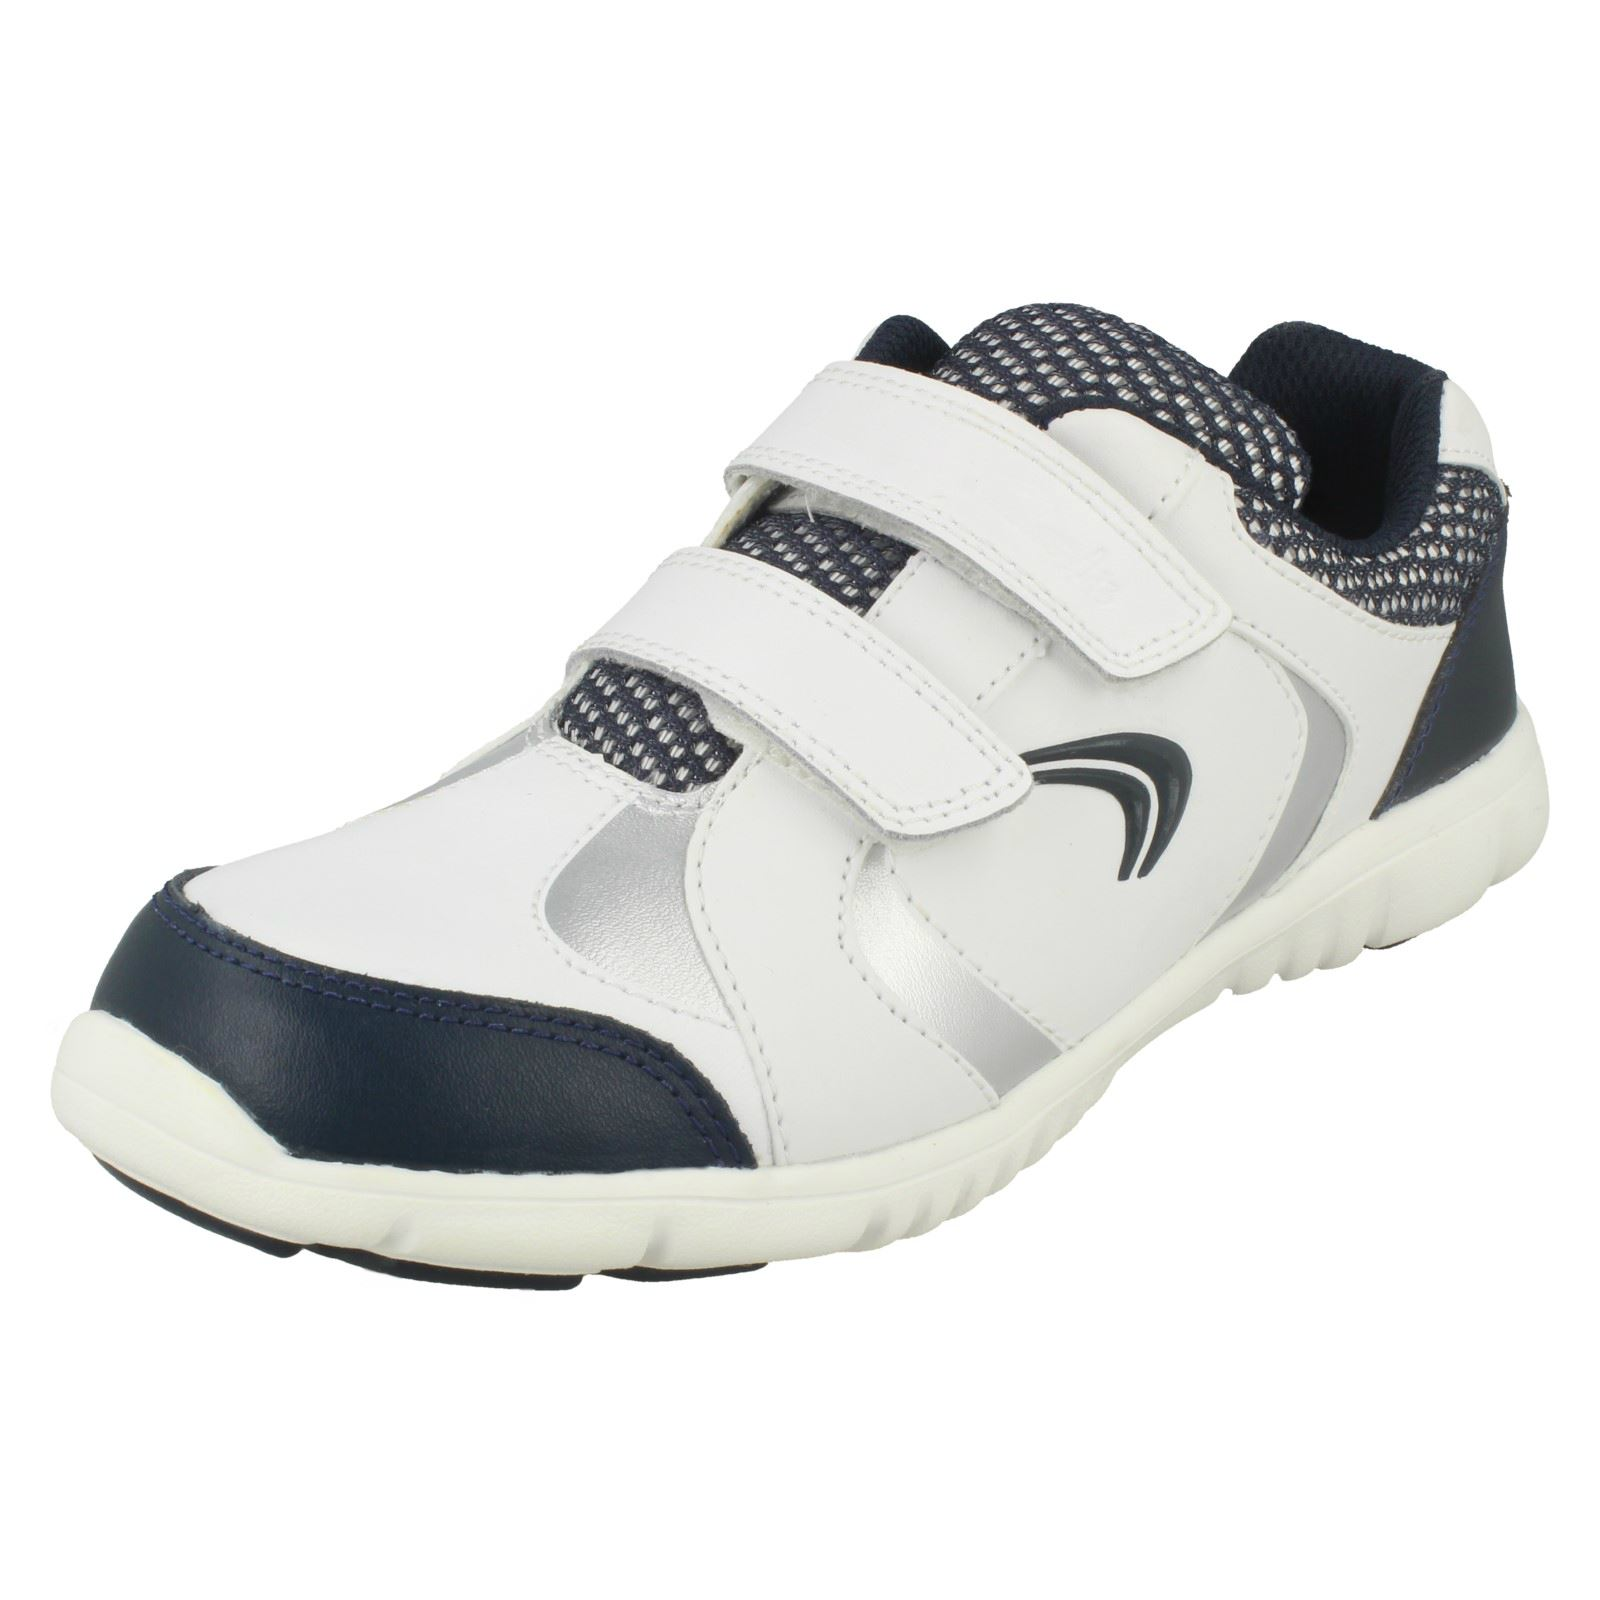 Boys Clarks Leather Sports Trainers